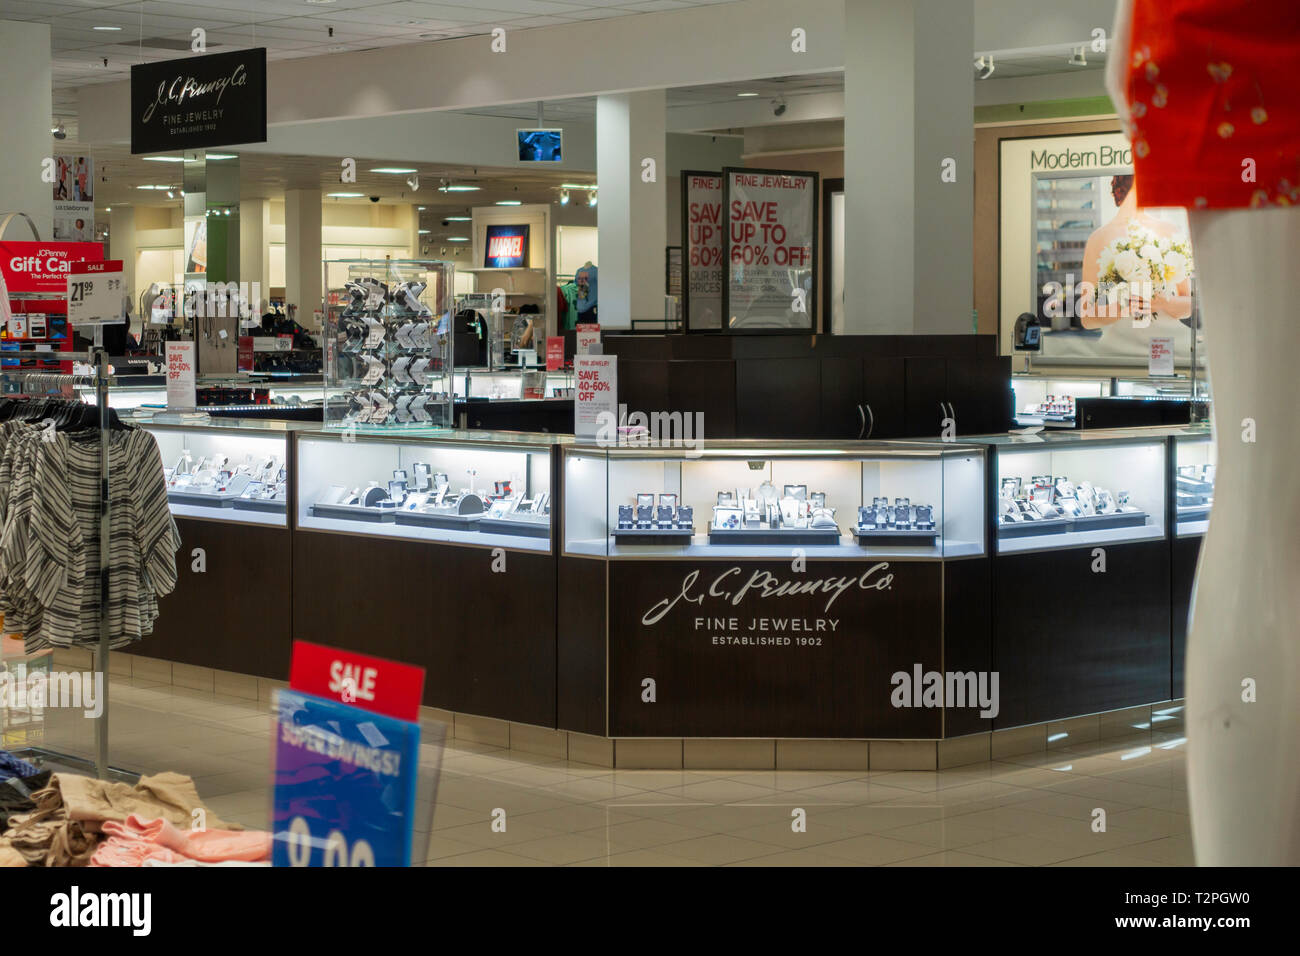 J.C. Penny's department store fine jewelry display case indoors. USA. - Stock Image